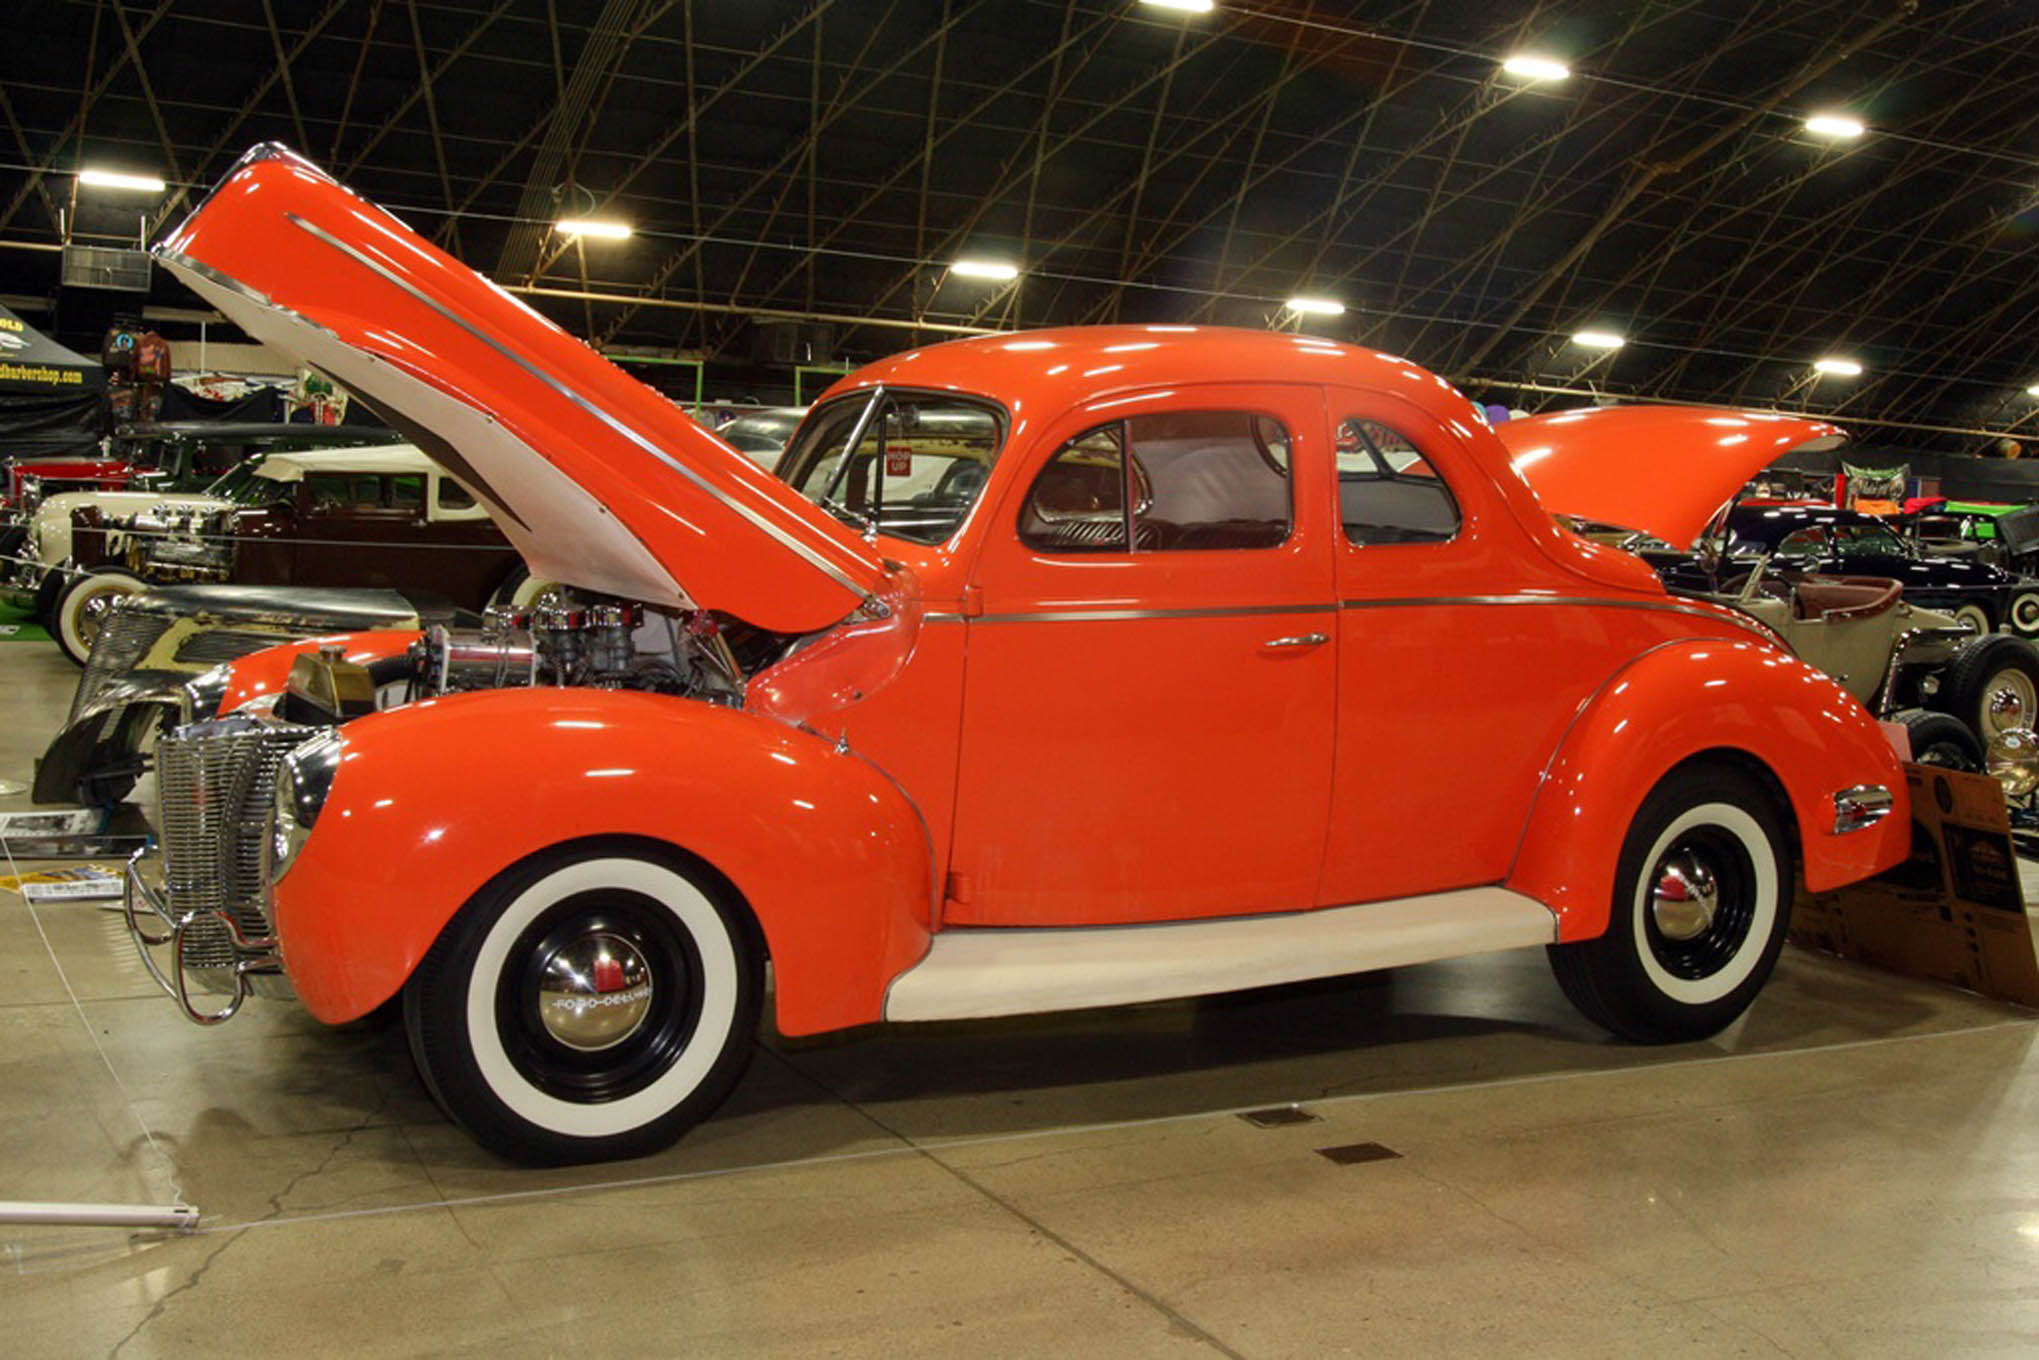 More history. Mike Wetherell bought this 1940 Ford coupe in 1957 and built it as you see it. The car was shown and raced, and sold in 191. After making the rounds for half a century it recently came back to Mike and is being restored to its '50s condition, with a tri-power Olds. We're told those are still the same tires.